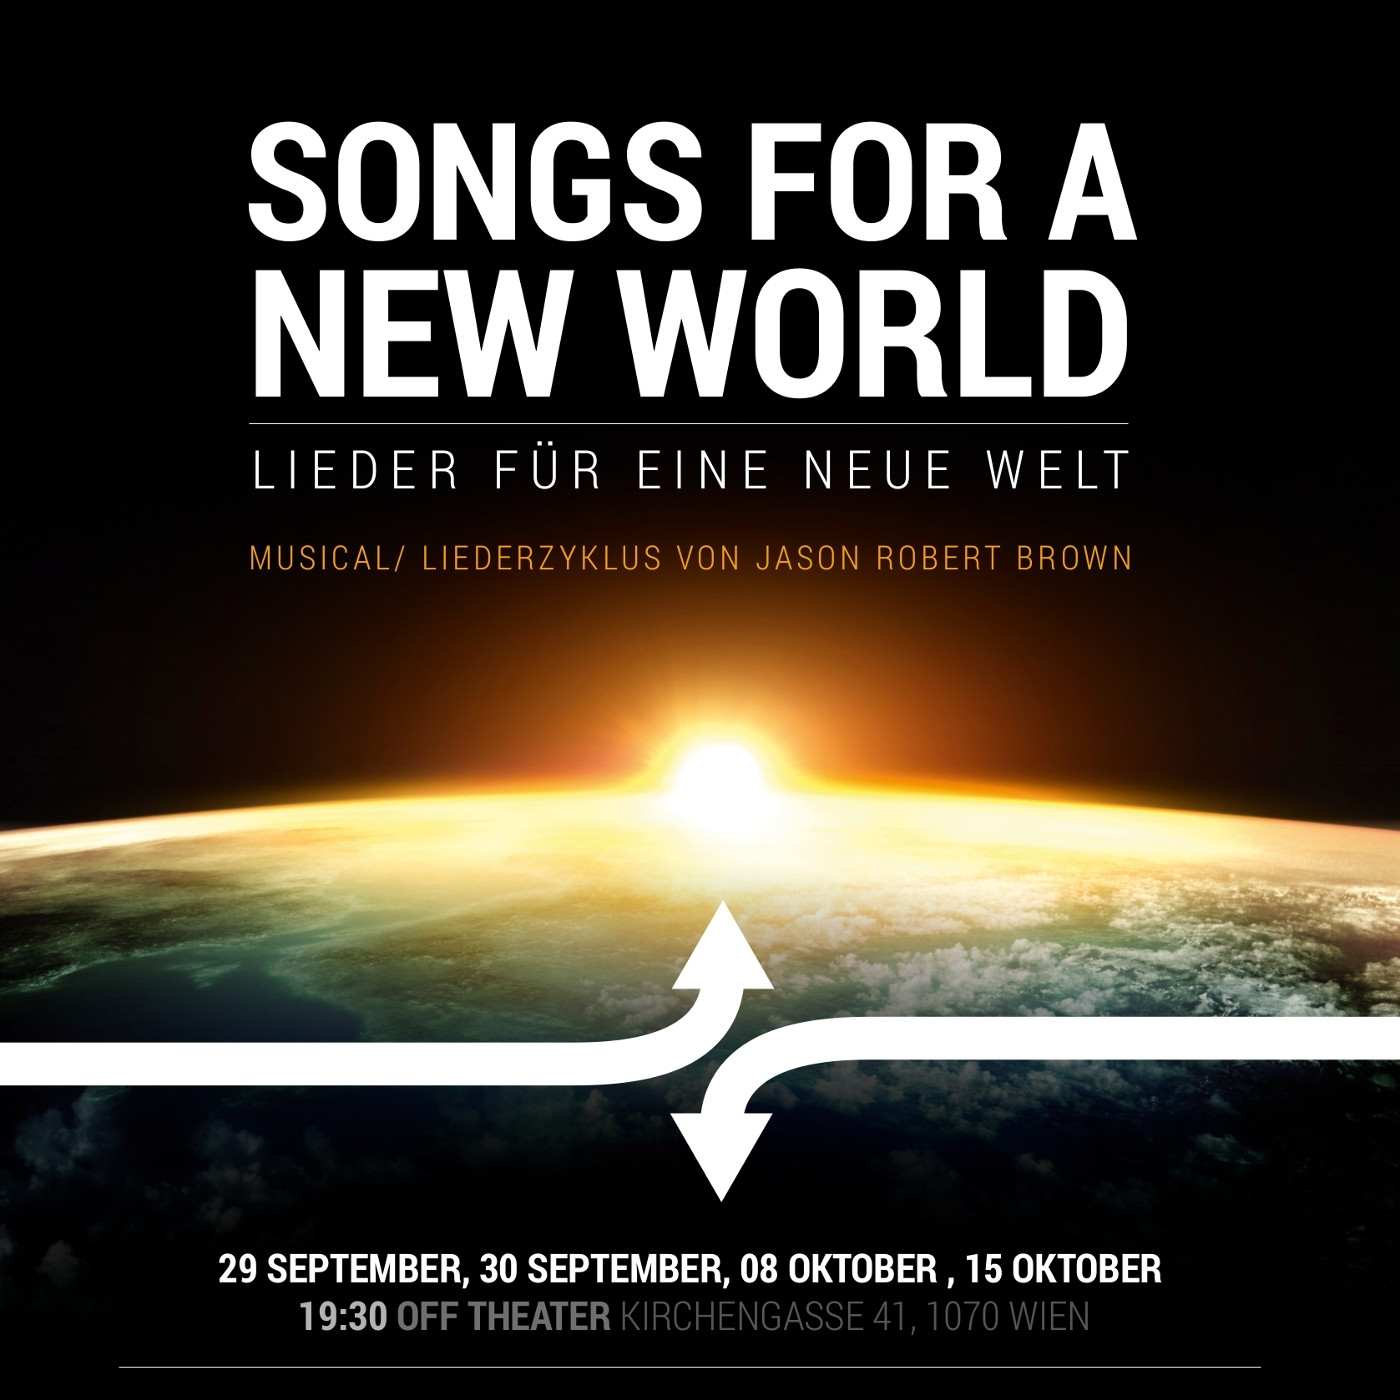 Songs for a new World © Greslehner